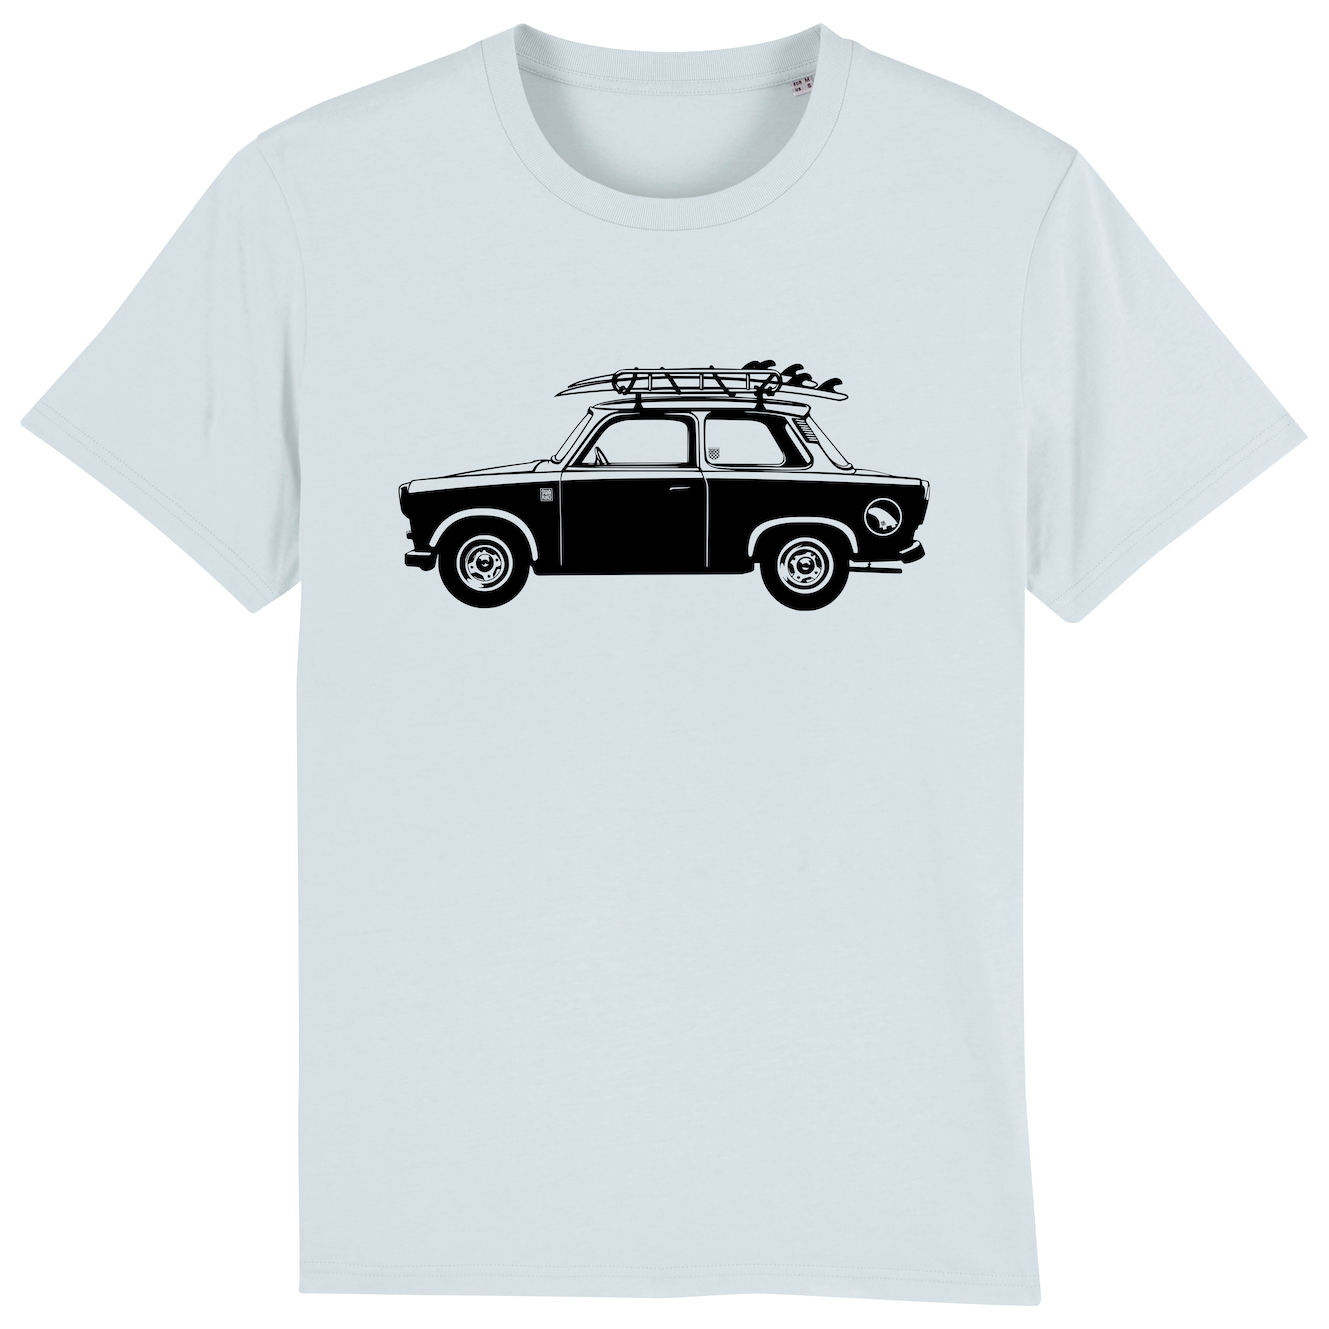 Surf t-shirt men blue, Trabant